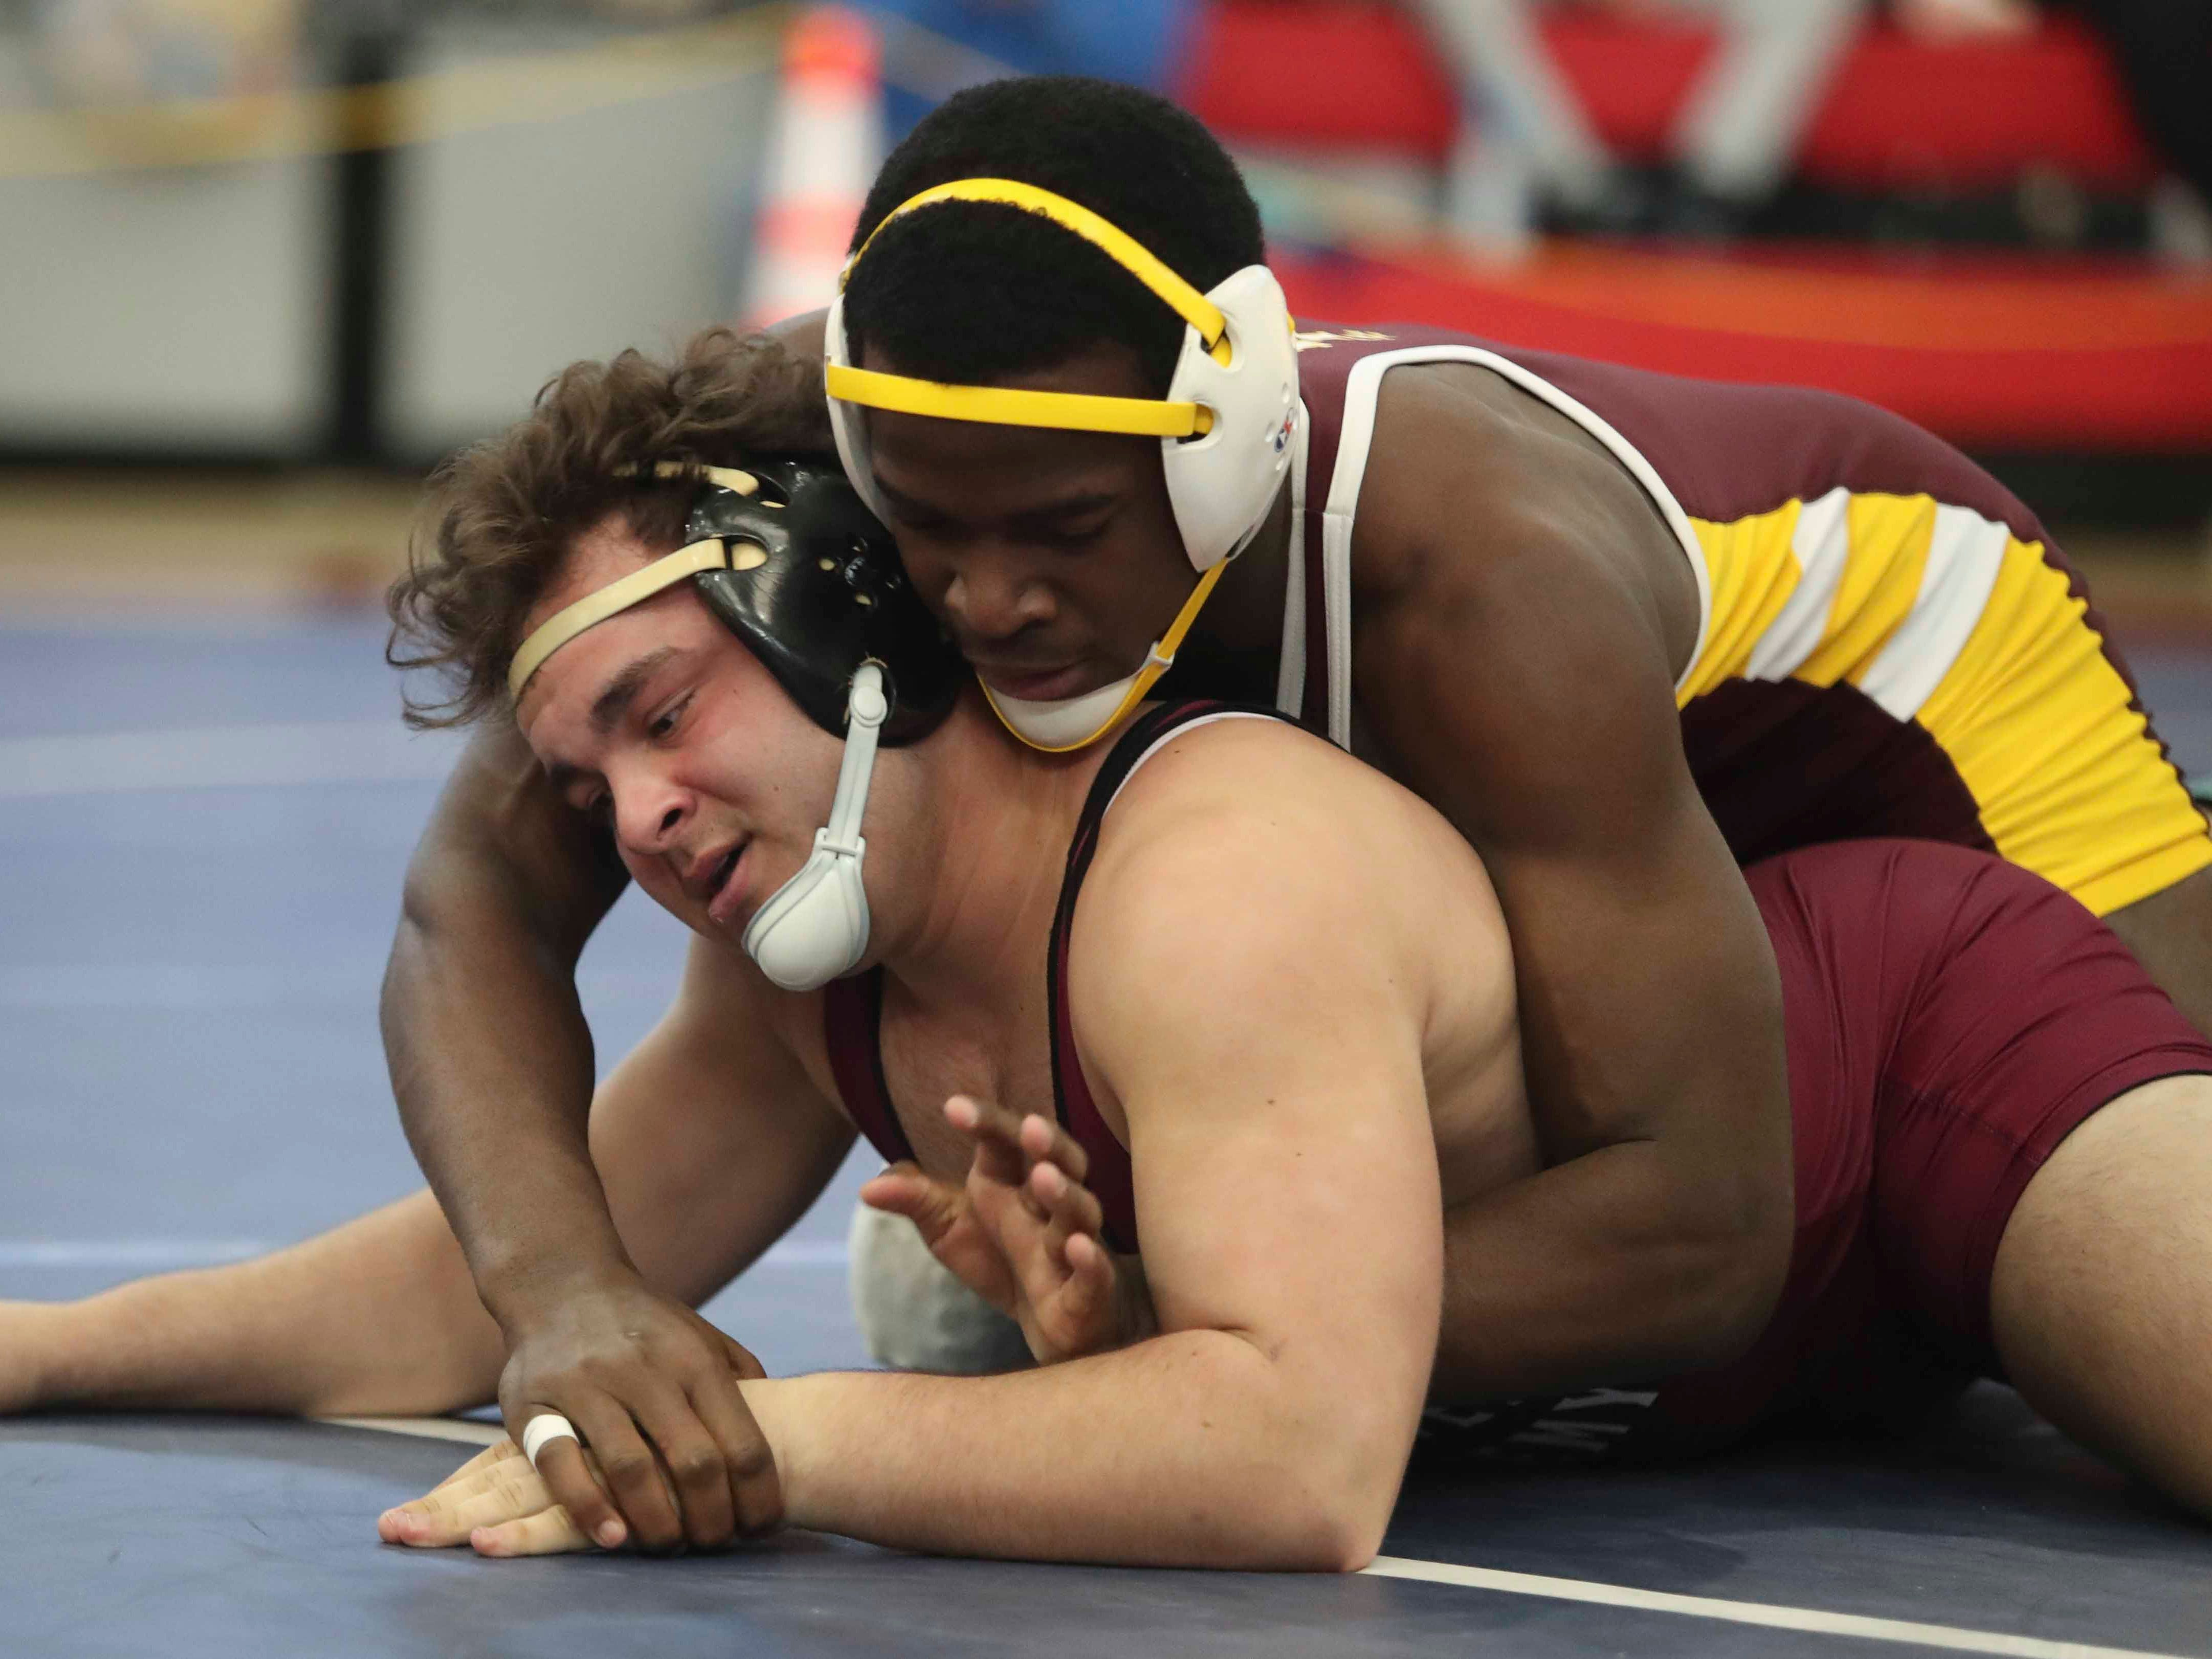 Milford's Bevensky Augustine (top) wrestles Caravel's Luke Duarte before winning at 182 pounds in the final round of the DIAA Division II dual meet championships Saturday at Smyrna High School.